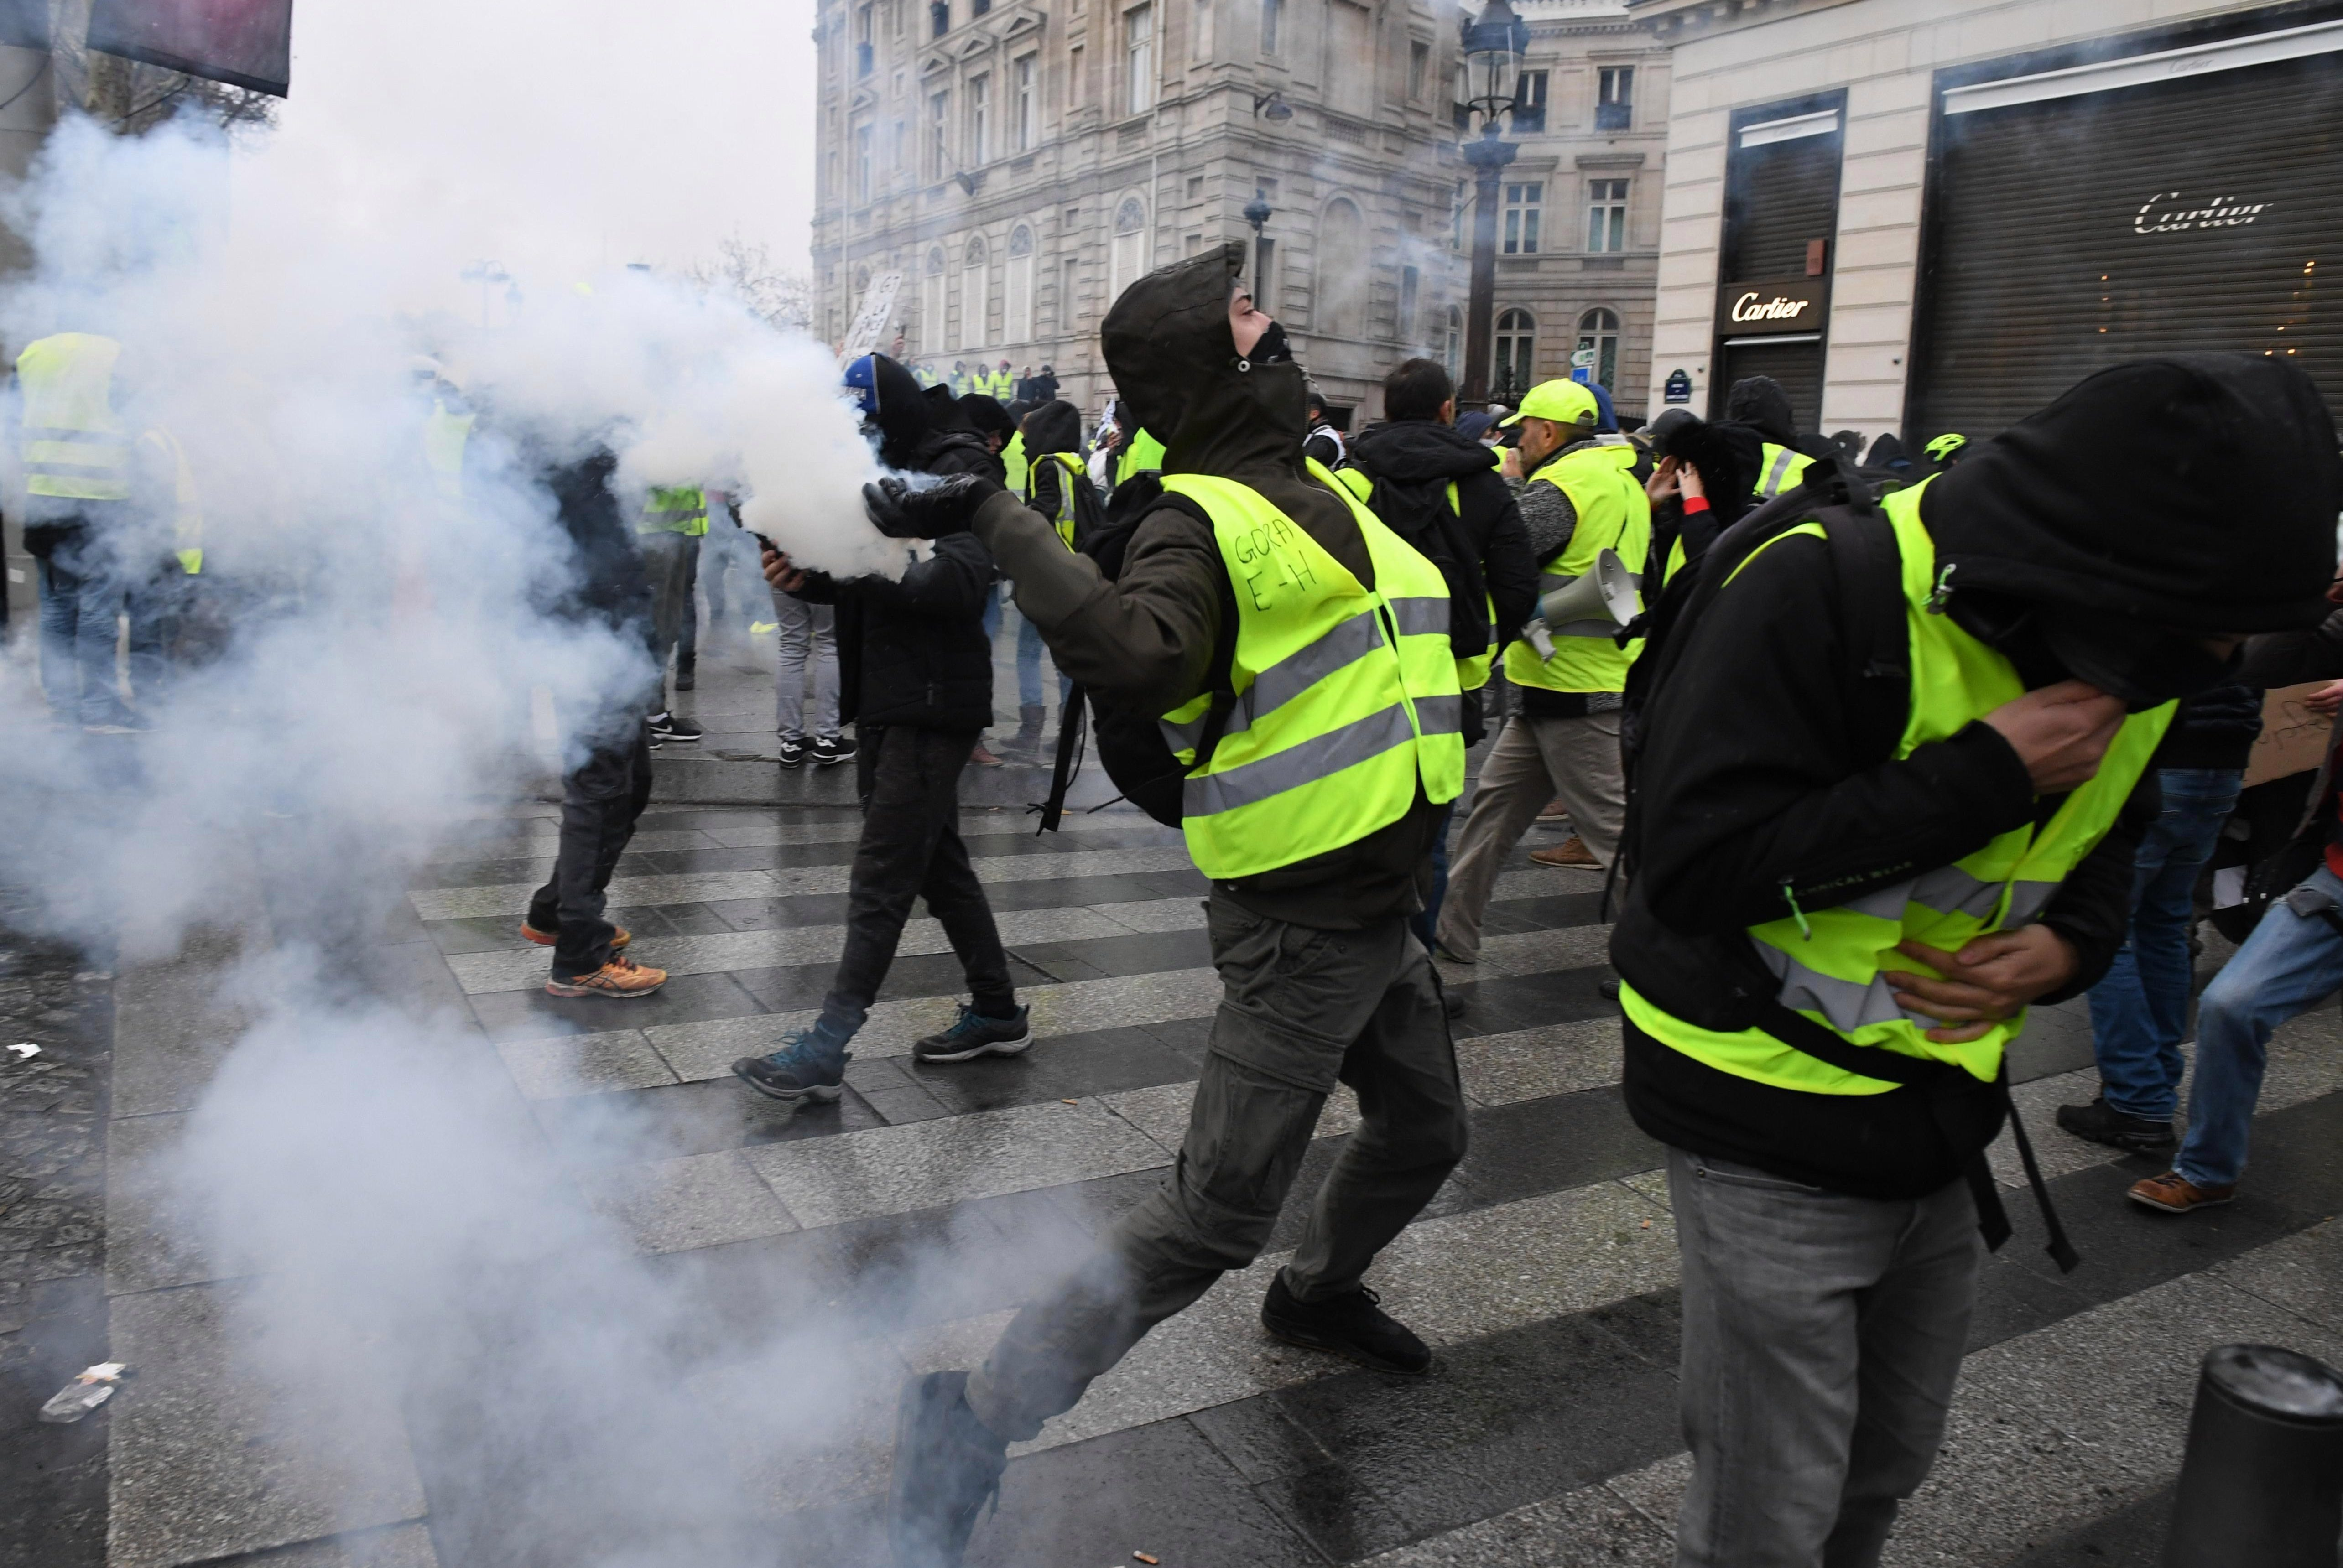 Paris in lockdown with tear gas fired as 5,000 protesters descend for 'Day of